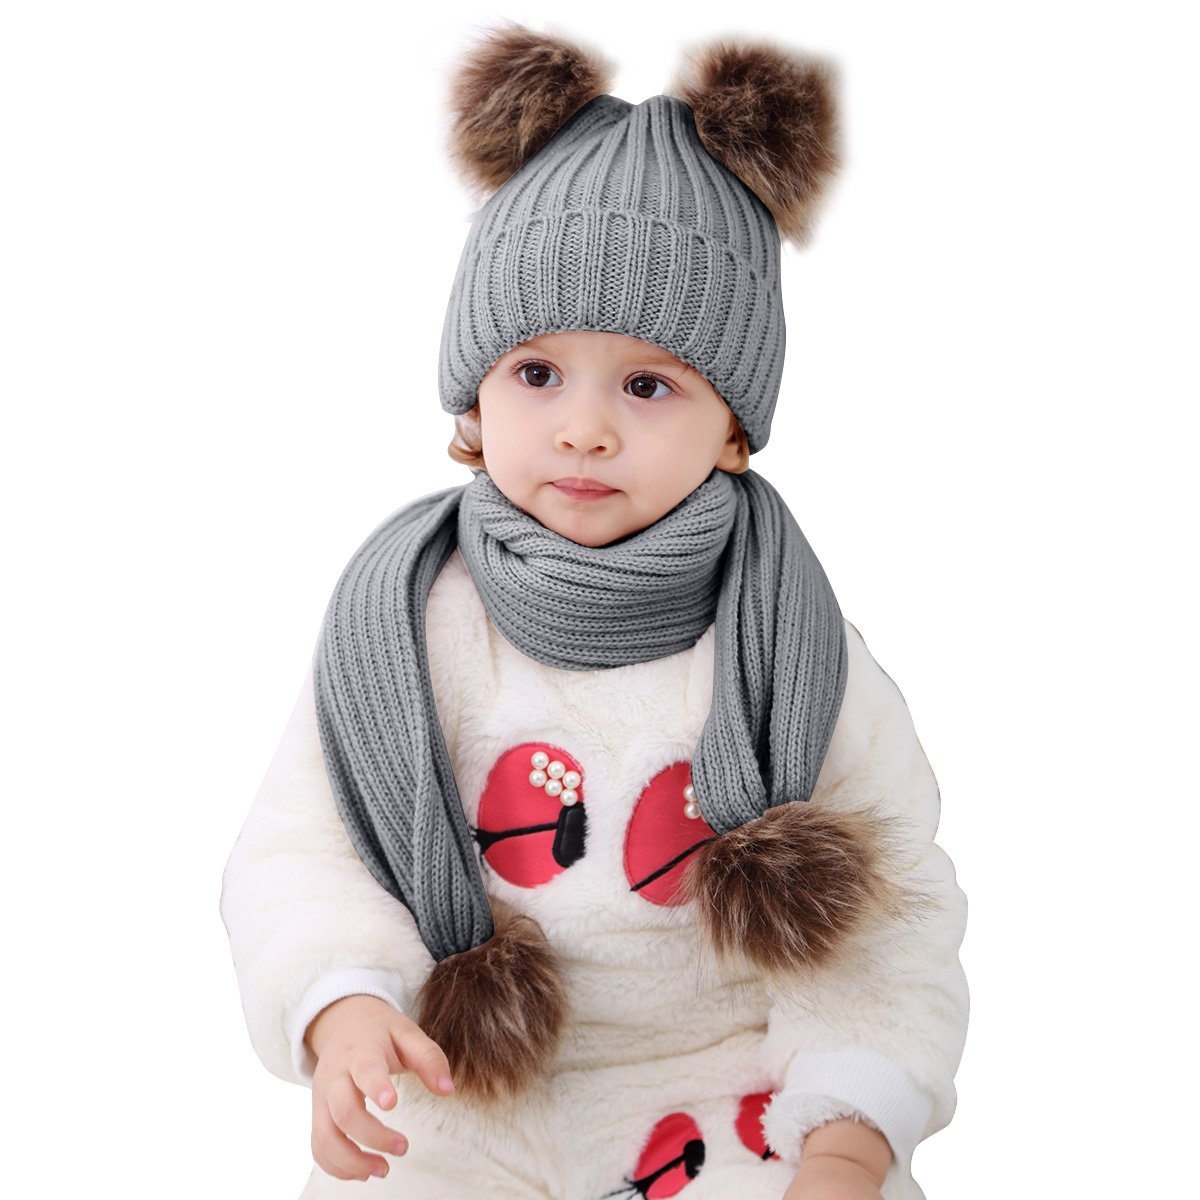 126c63f4a 2pcs Baby Girls Boys Winter Hat Scarf Set, Infant Toddler Newborn ...